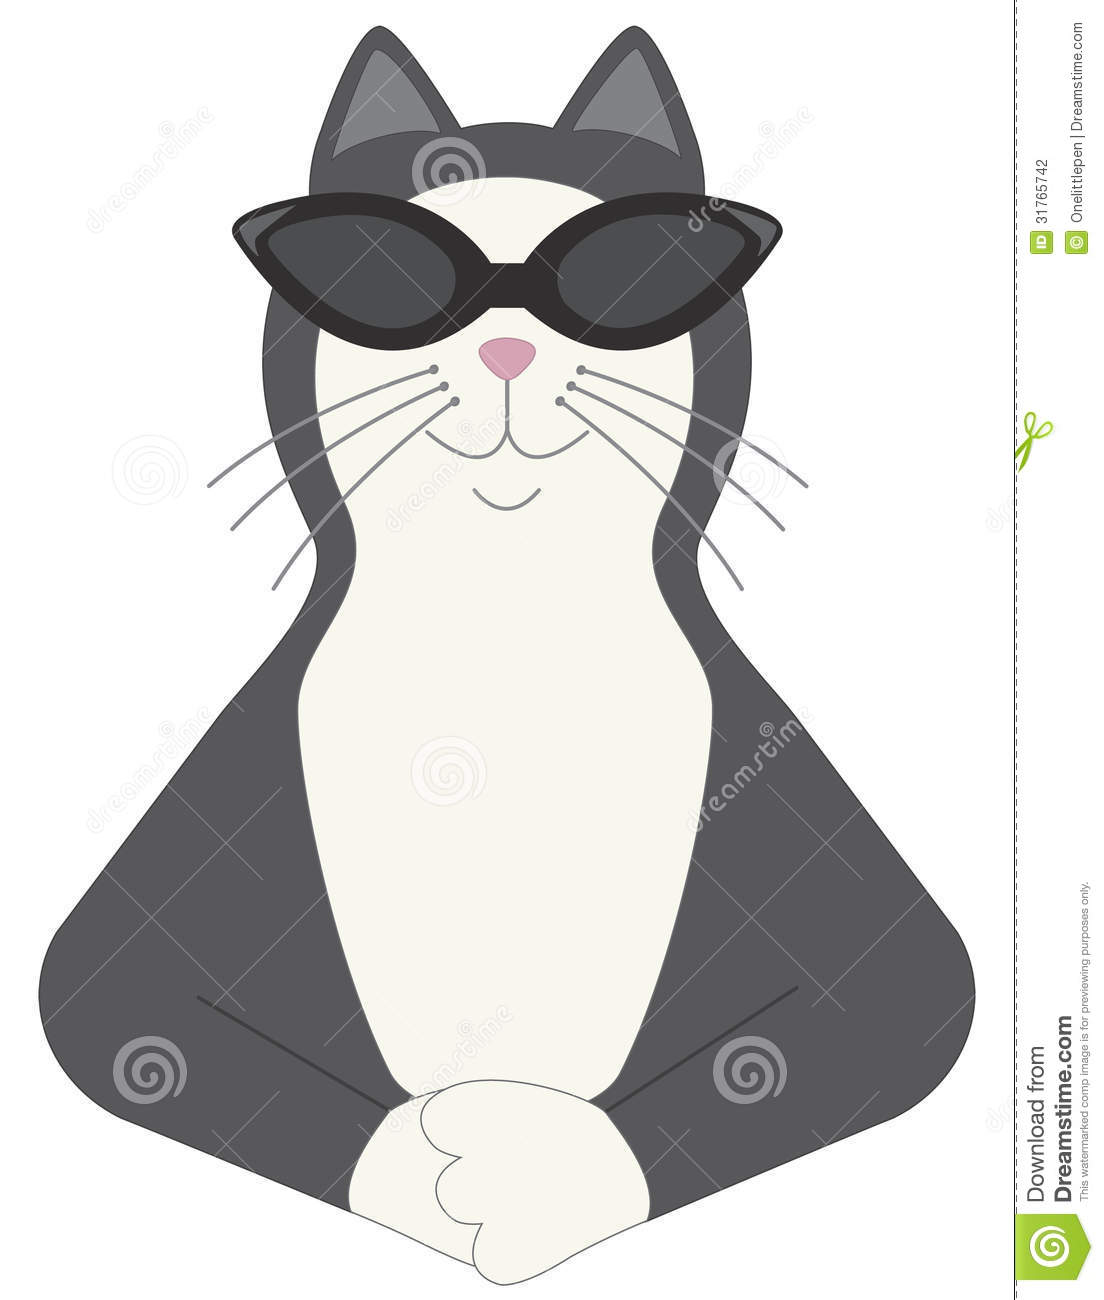 Happy Black And White Cat Wearing Sunglasses And Looking Very Cool